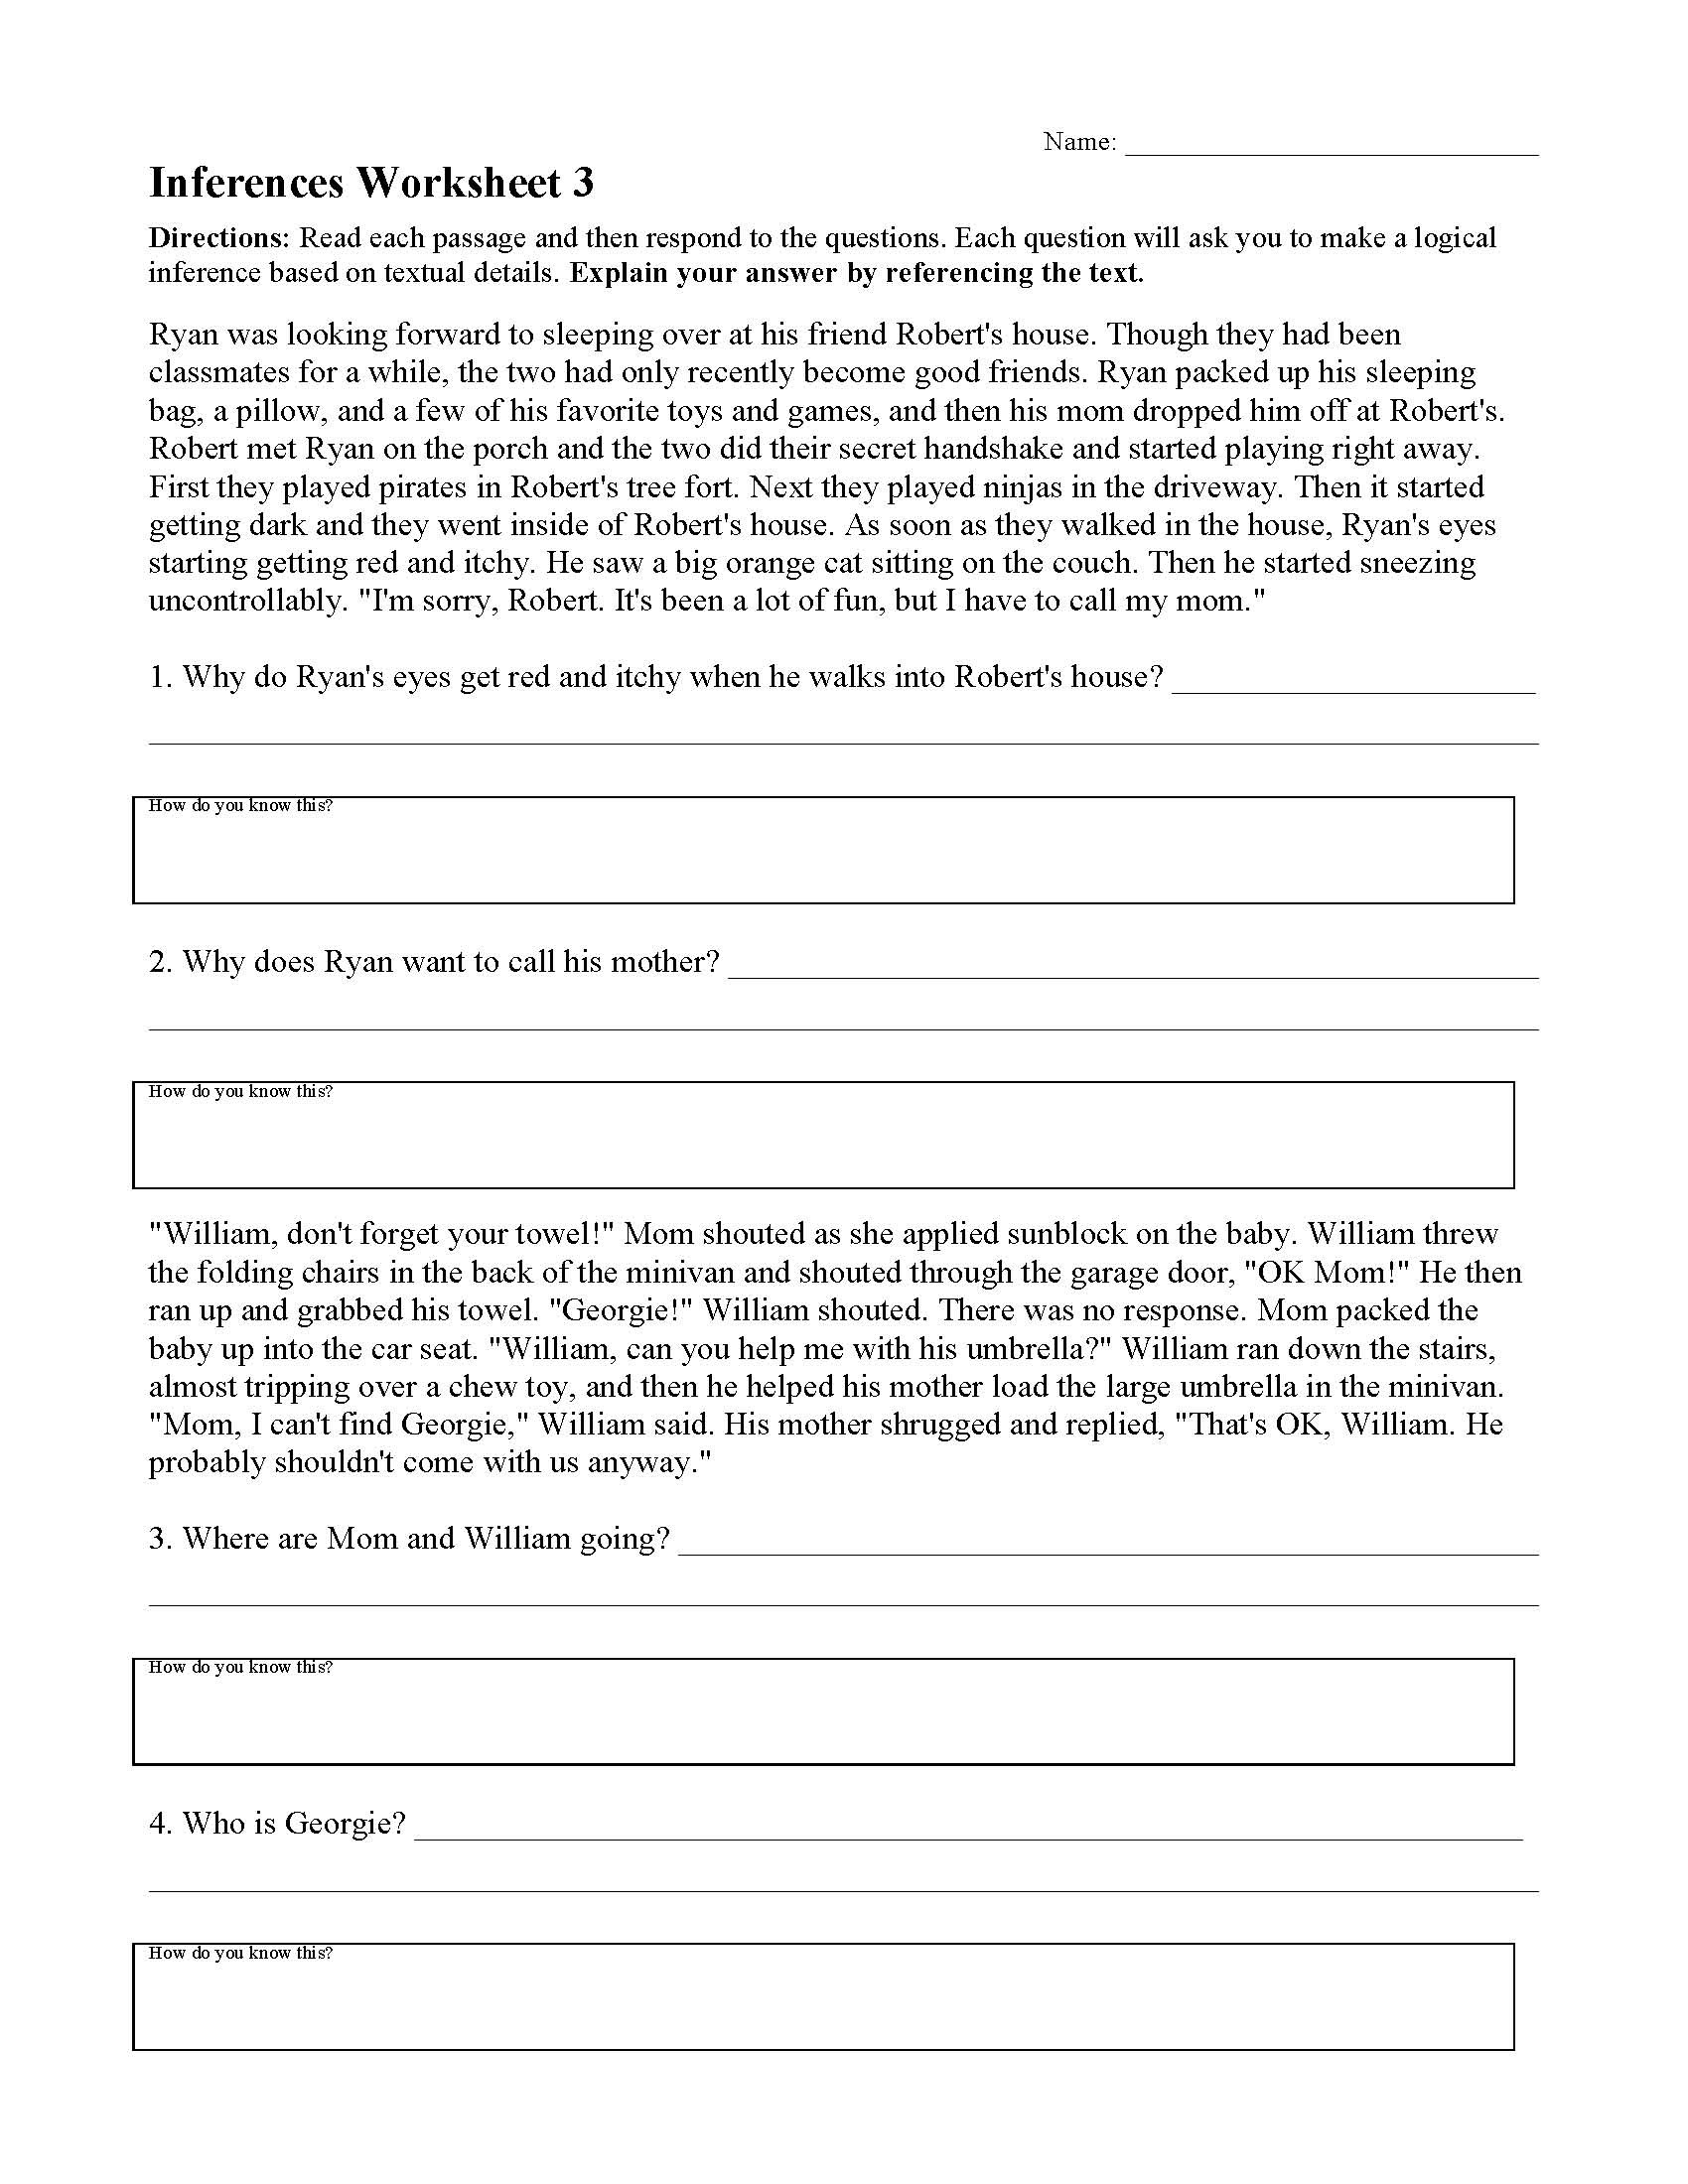 Drawing Conclusions Worksheets 5th Grade Inferences Worksheets